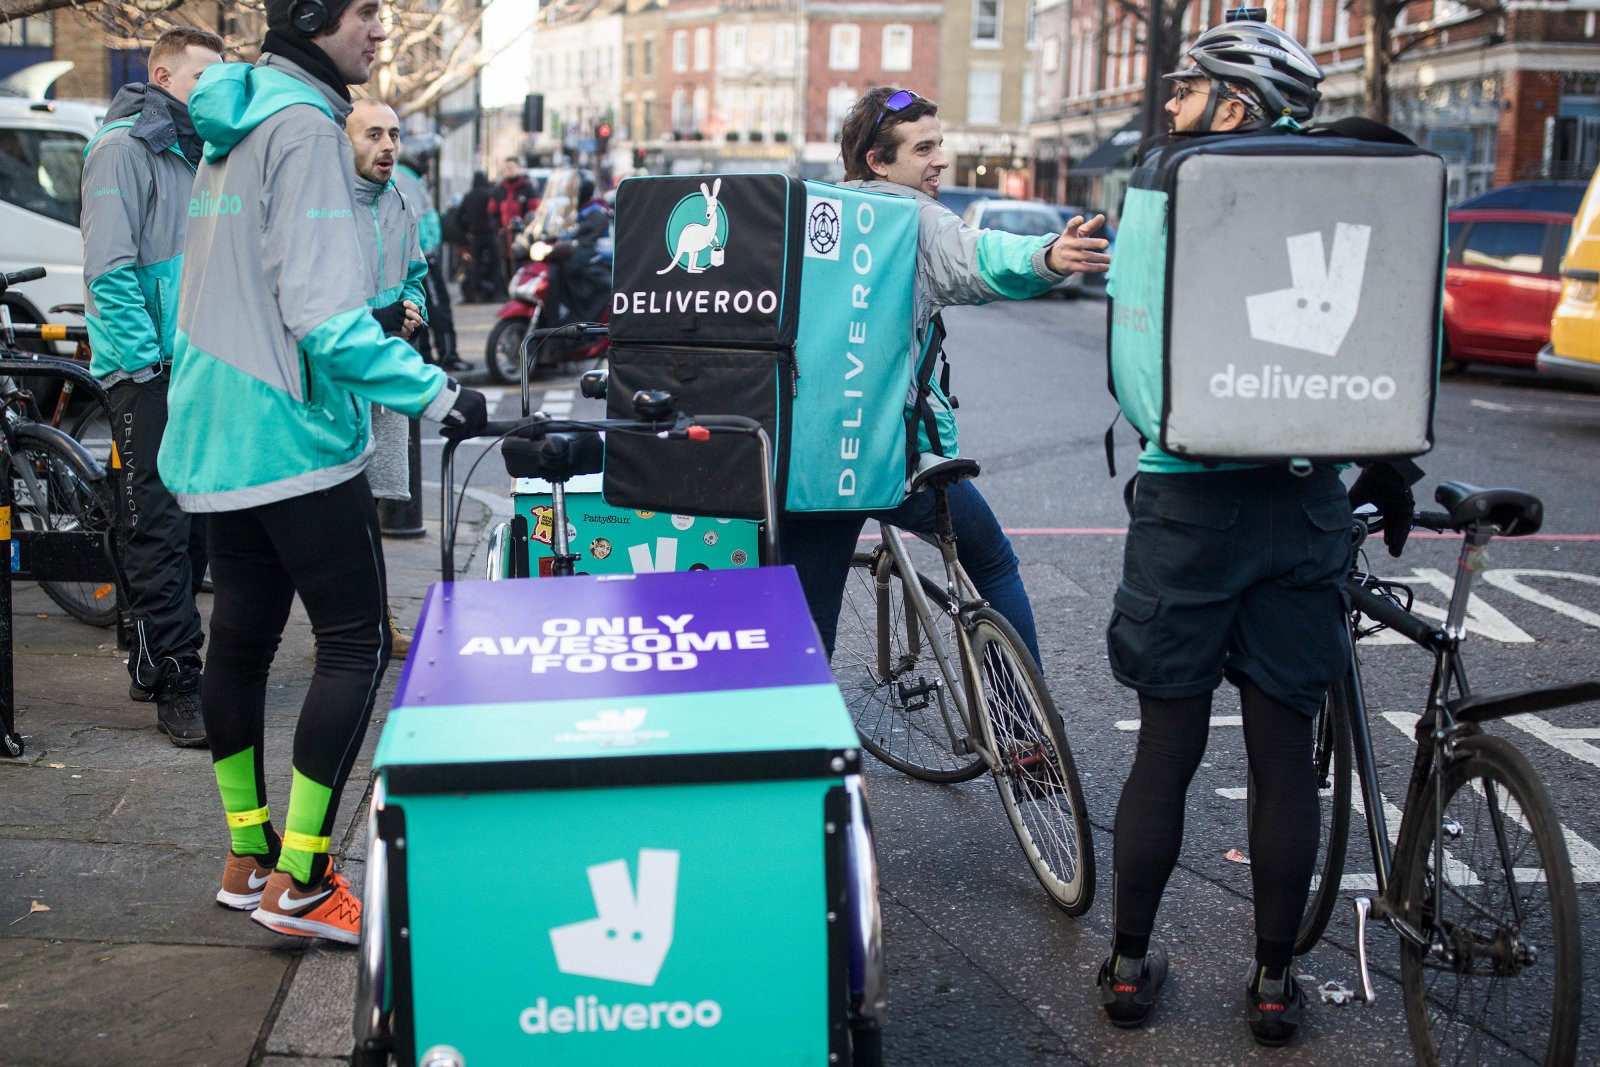 Why Deliveroo Withdrew From Germany My Perspective